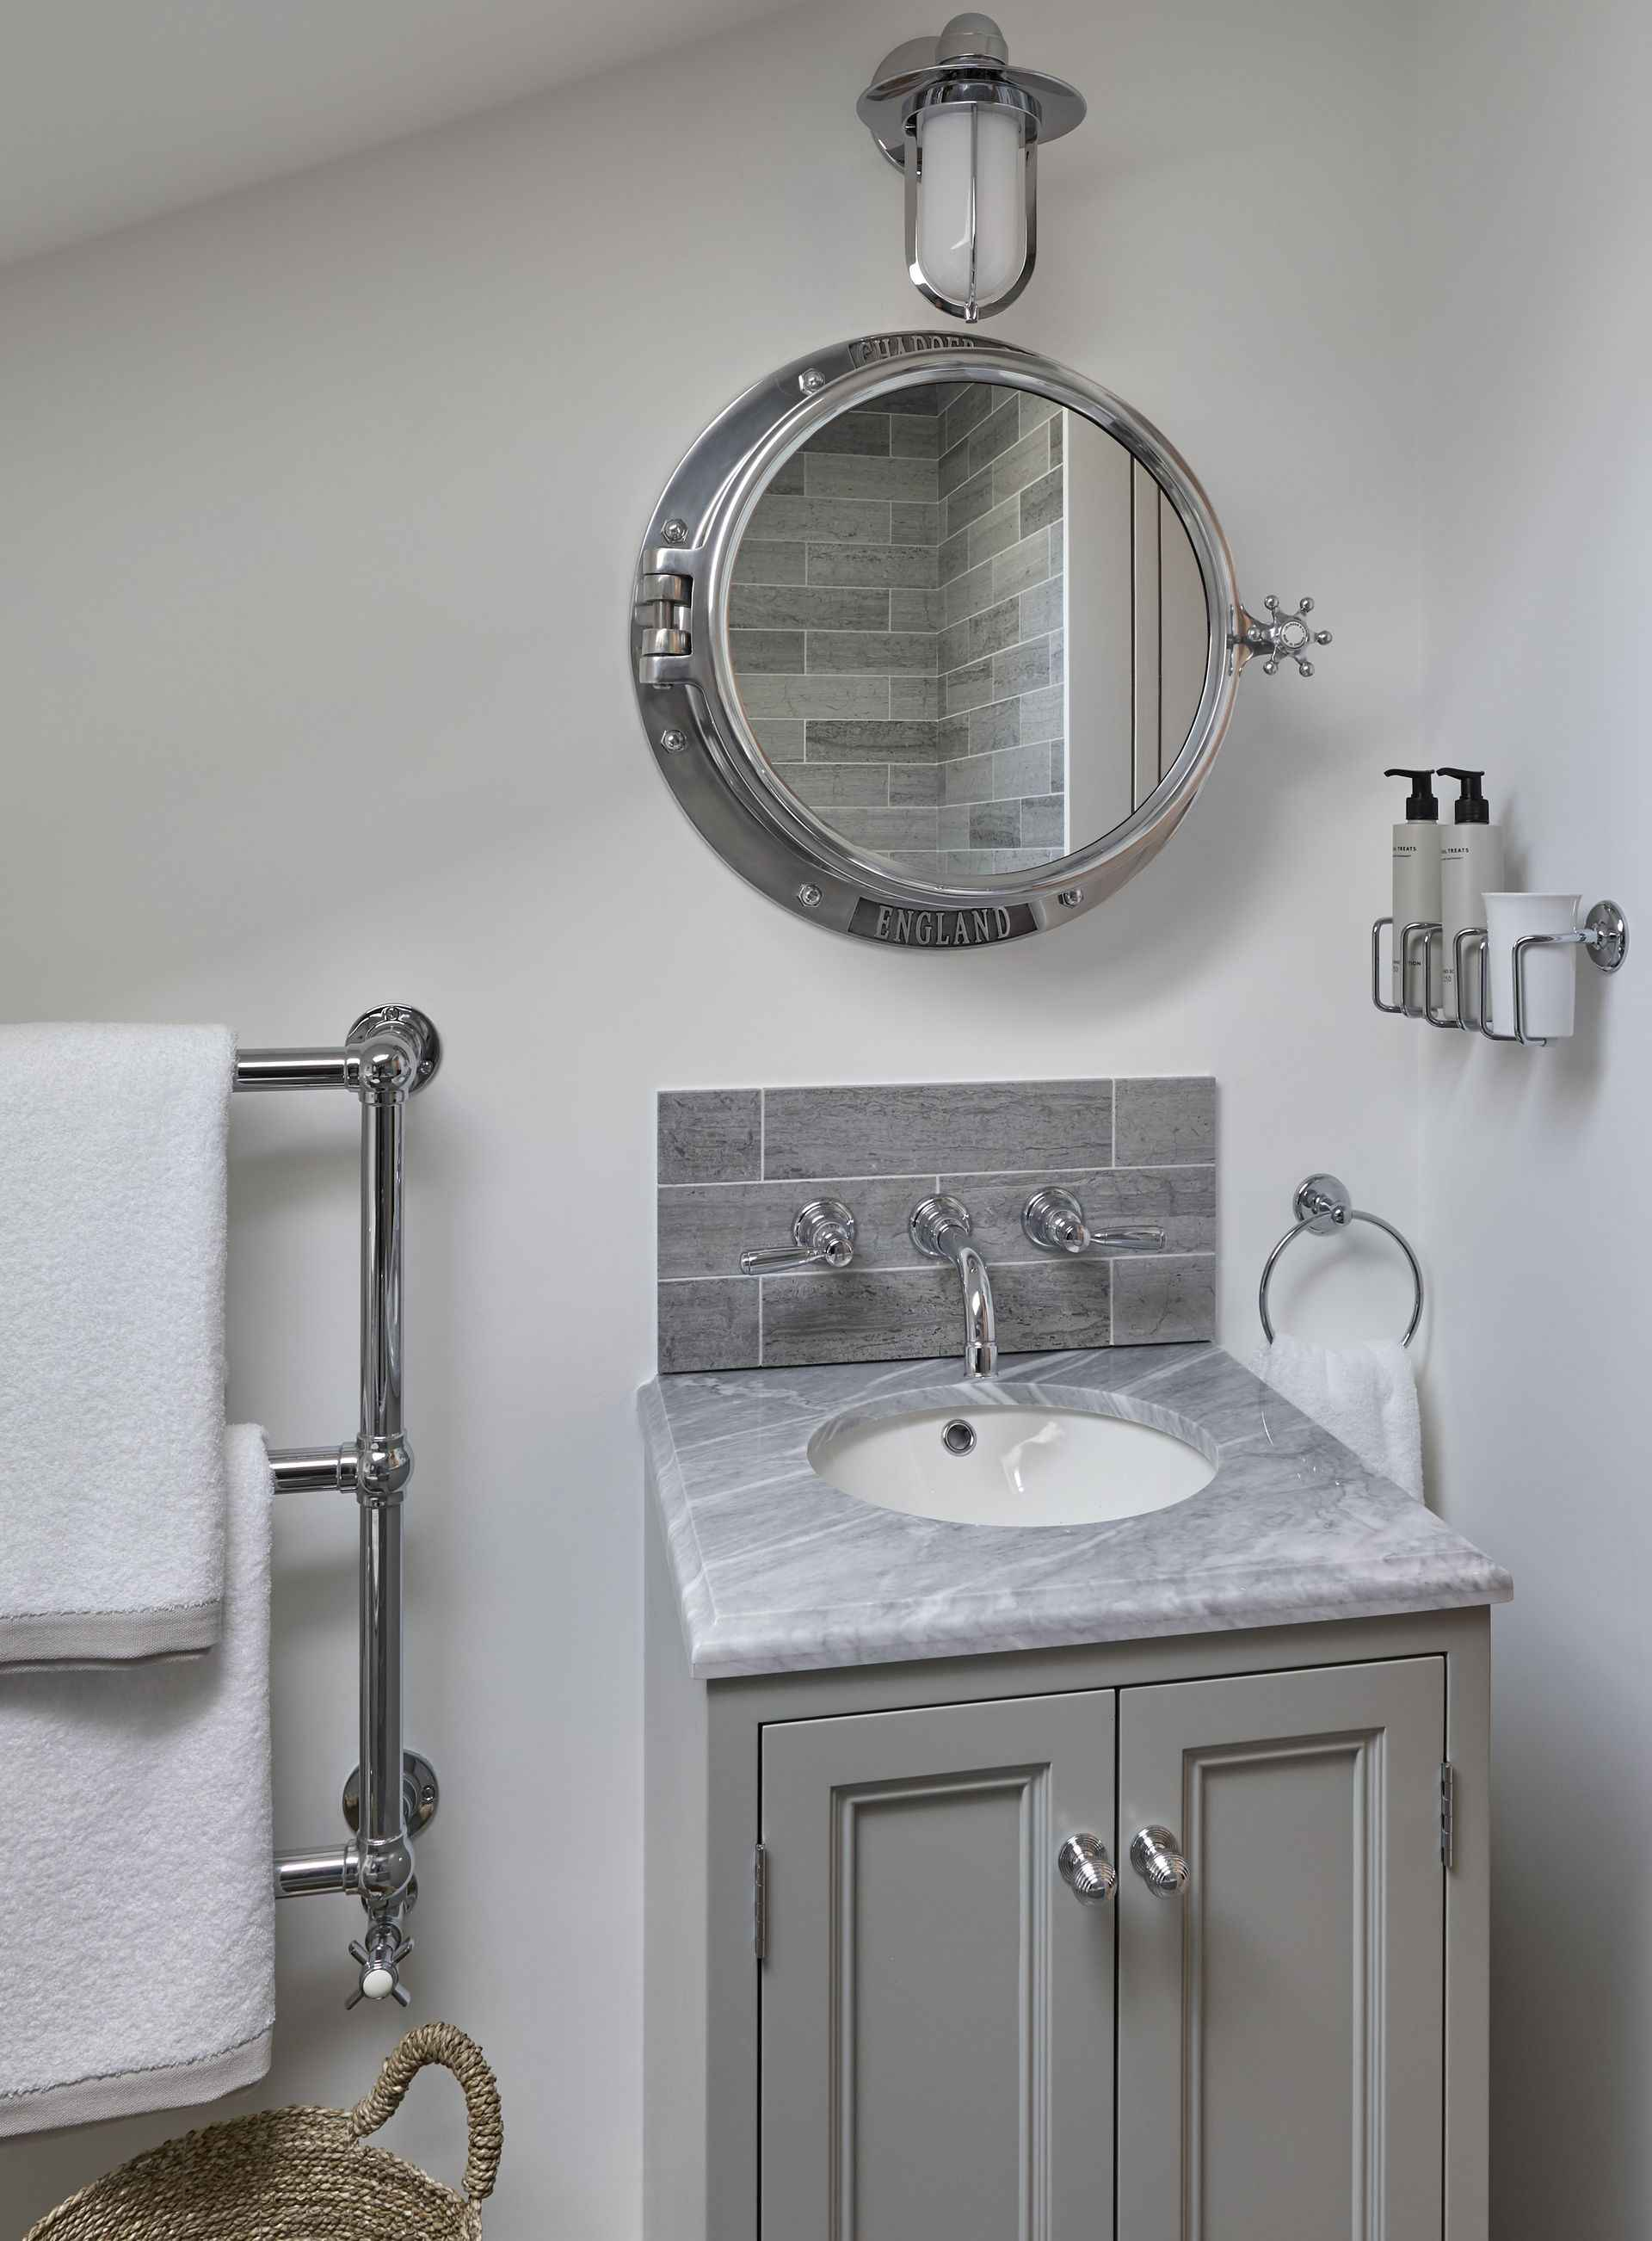 Sink and mirror in the oar room at Mountain Ash House